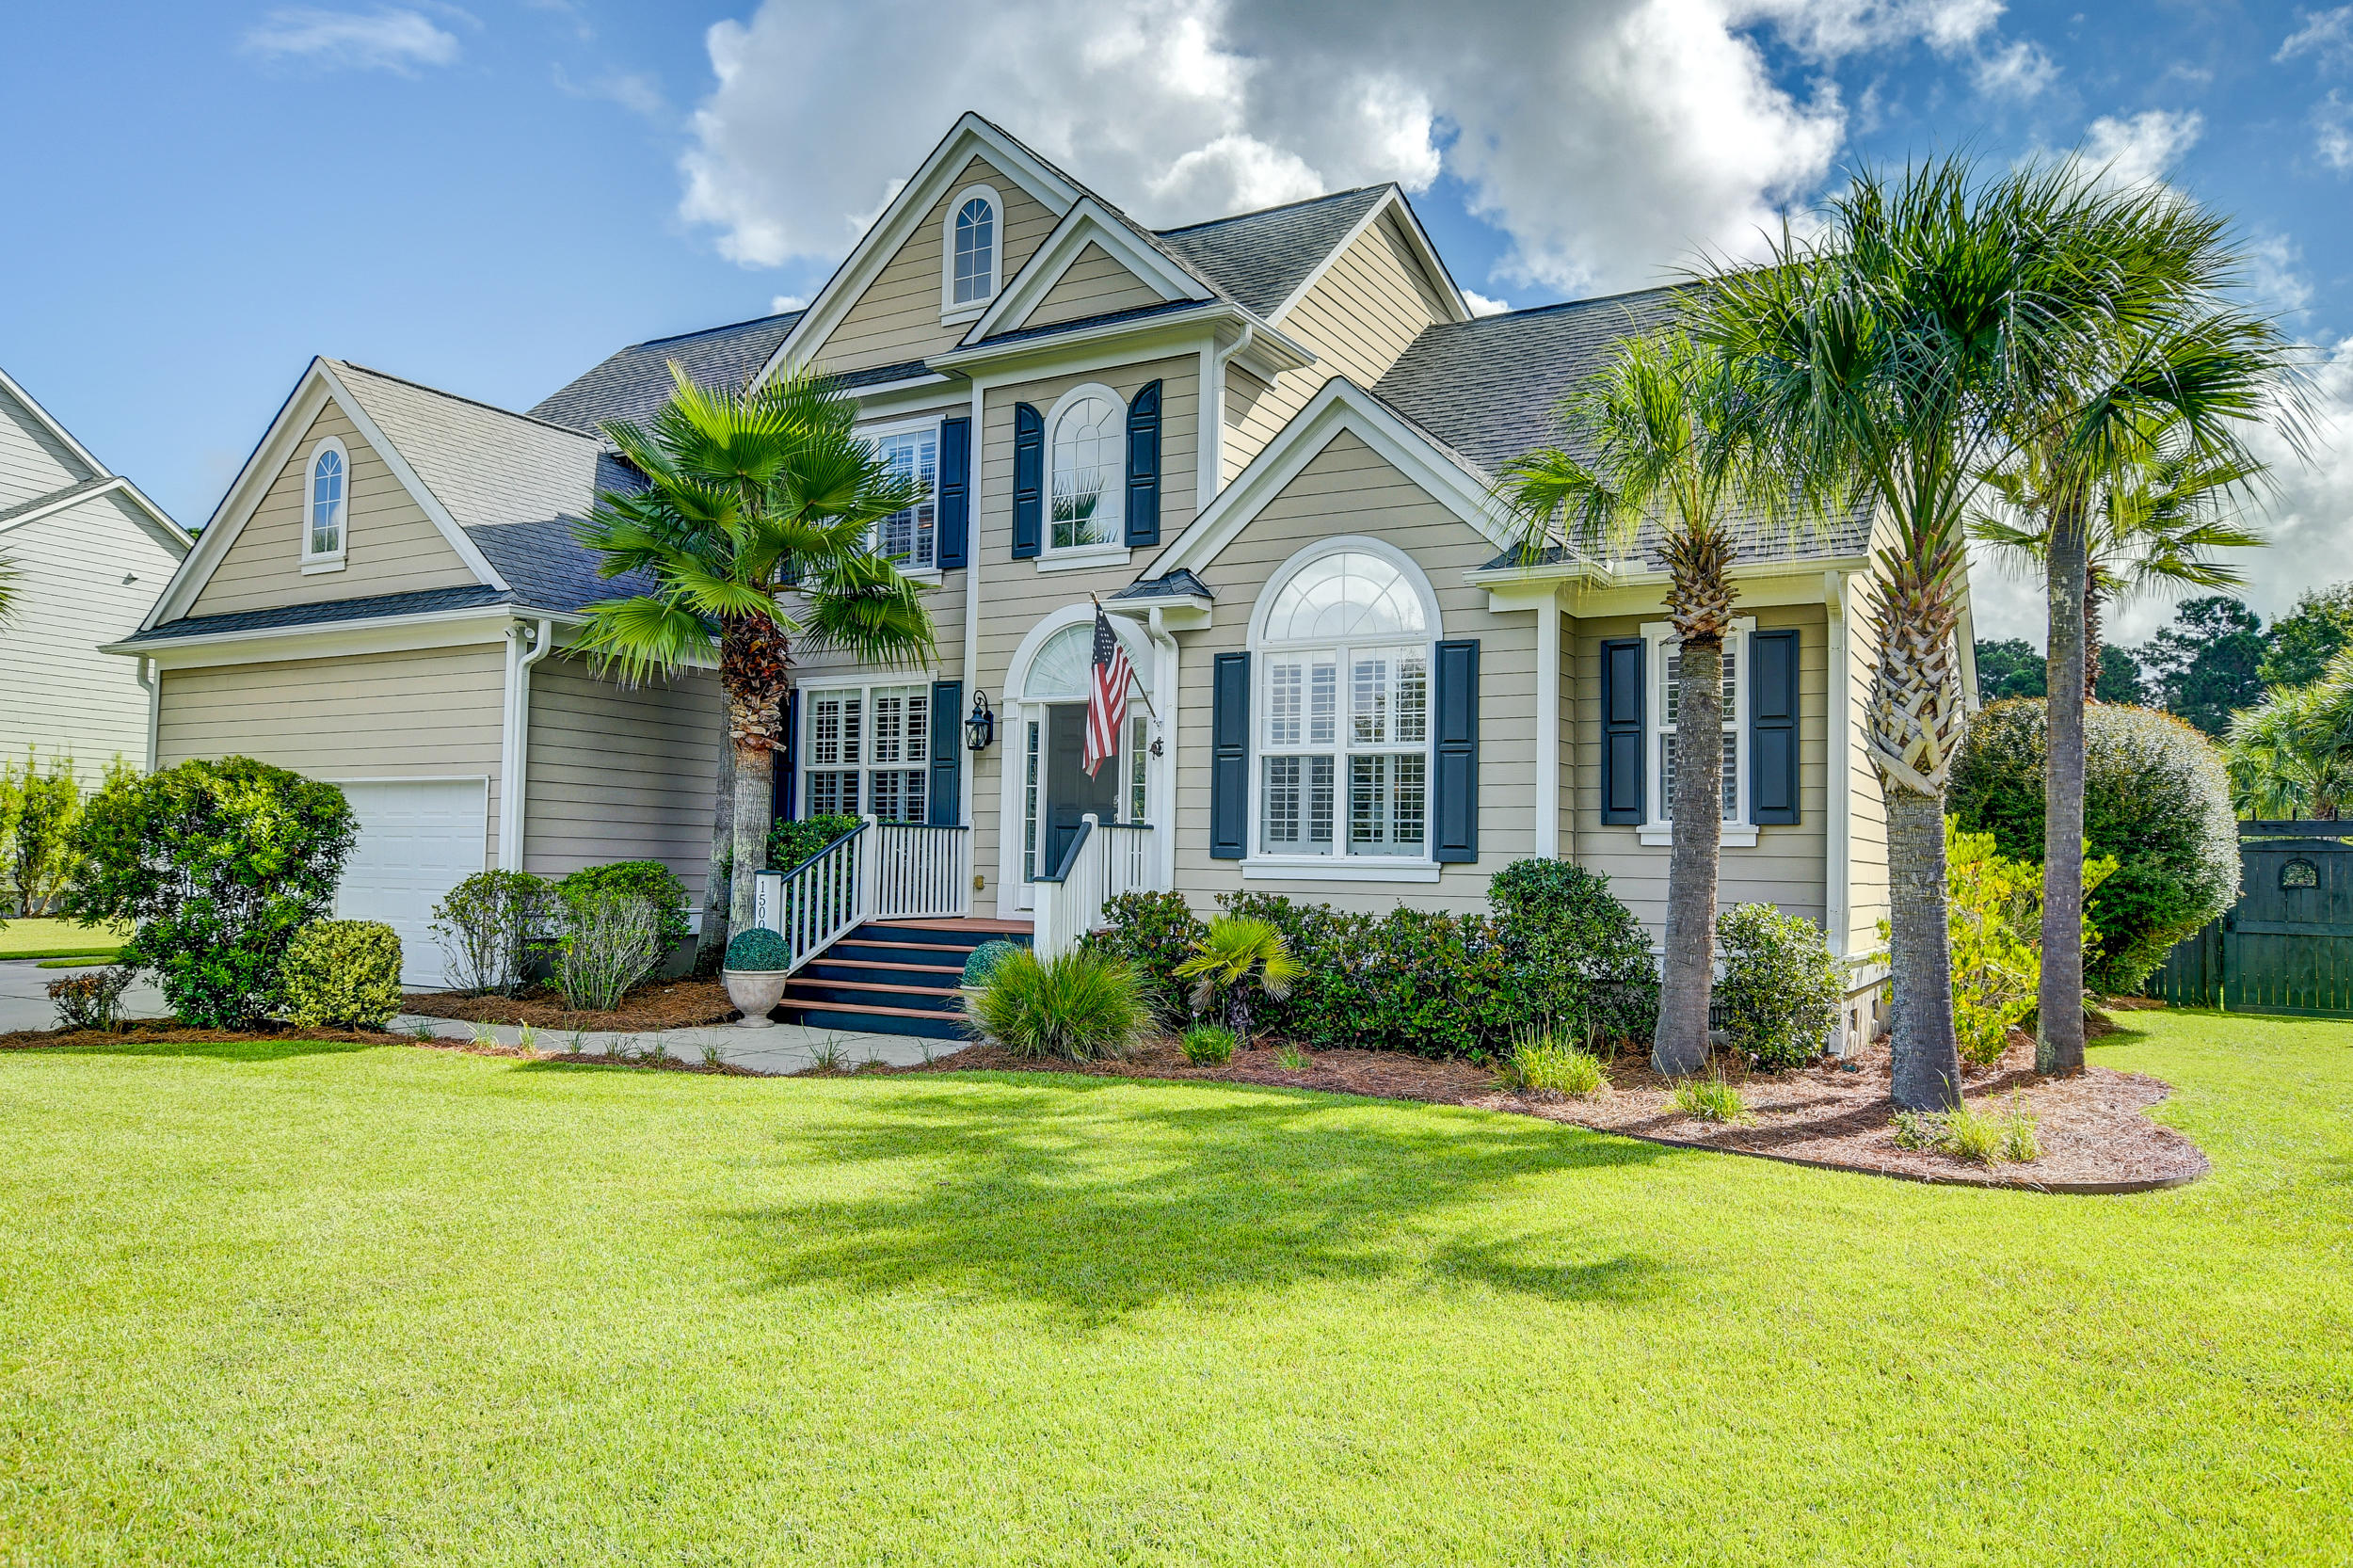 Dunes West Homes For Sale - 1500 Jacaranda, Mount Pleasant, SC - 27